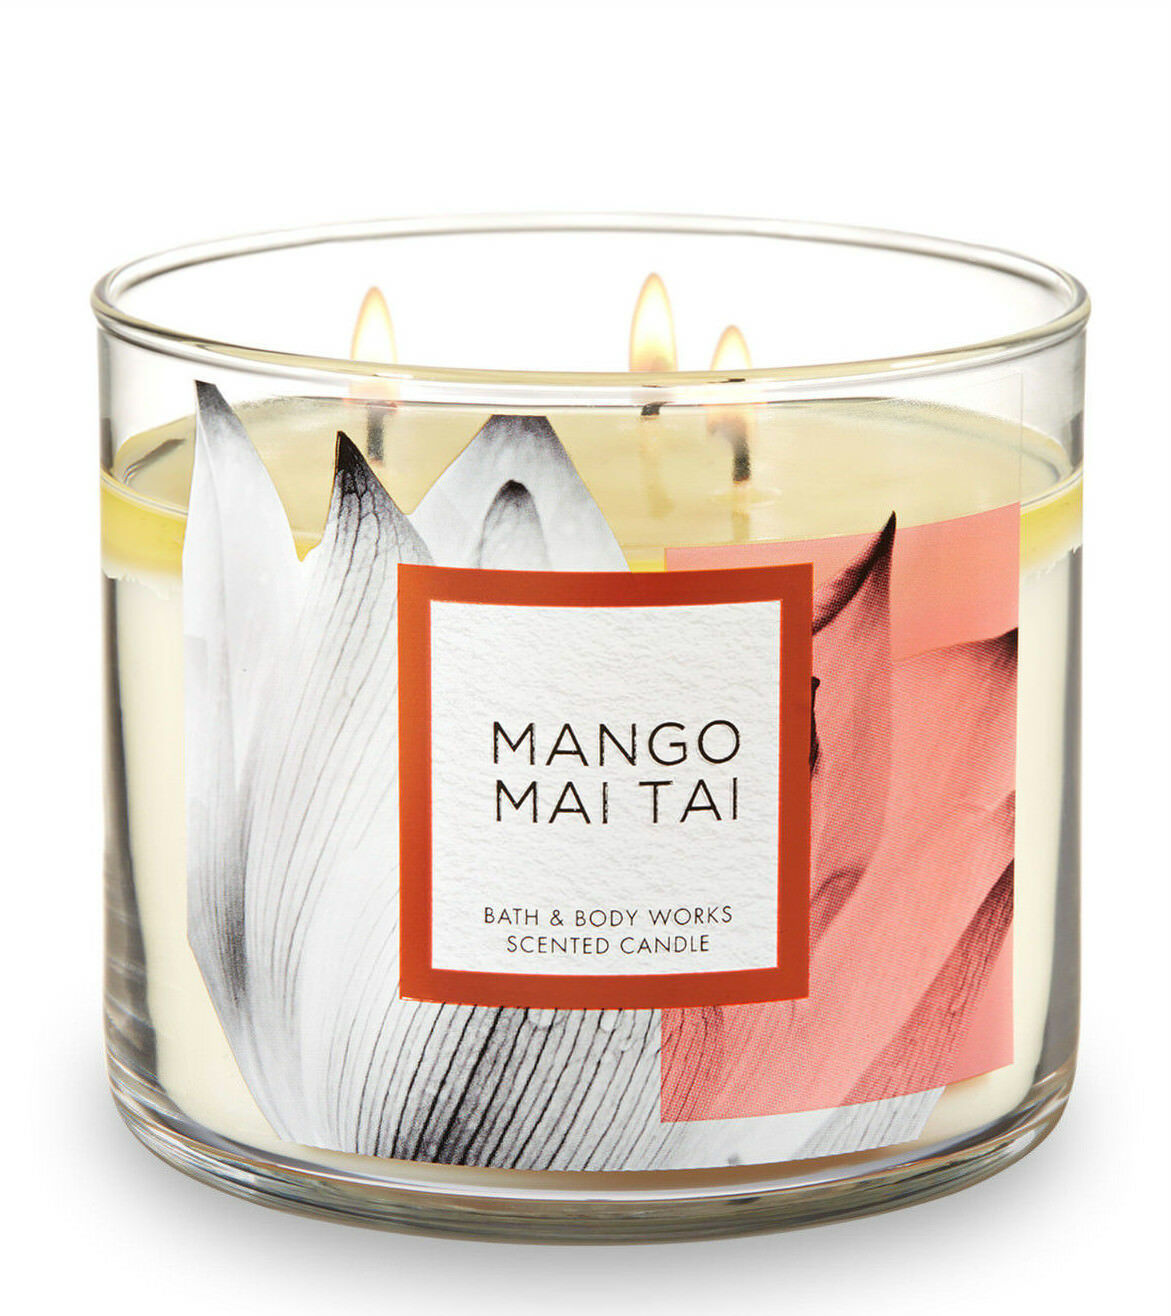 Bath & Body Works Mango Mai Tai Three Wick 14.5 Ounces Scented Candle - $23.95